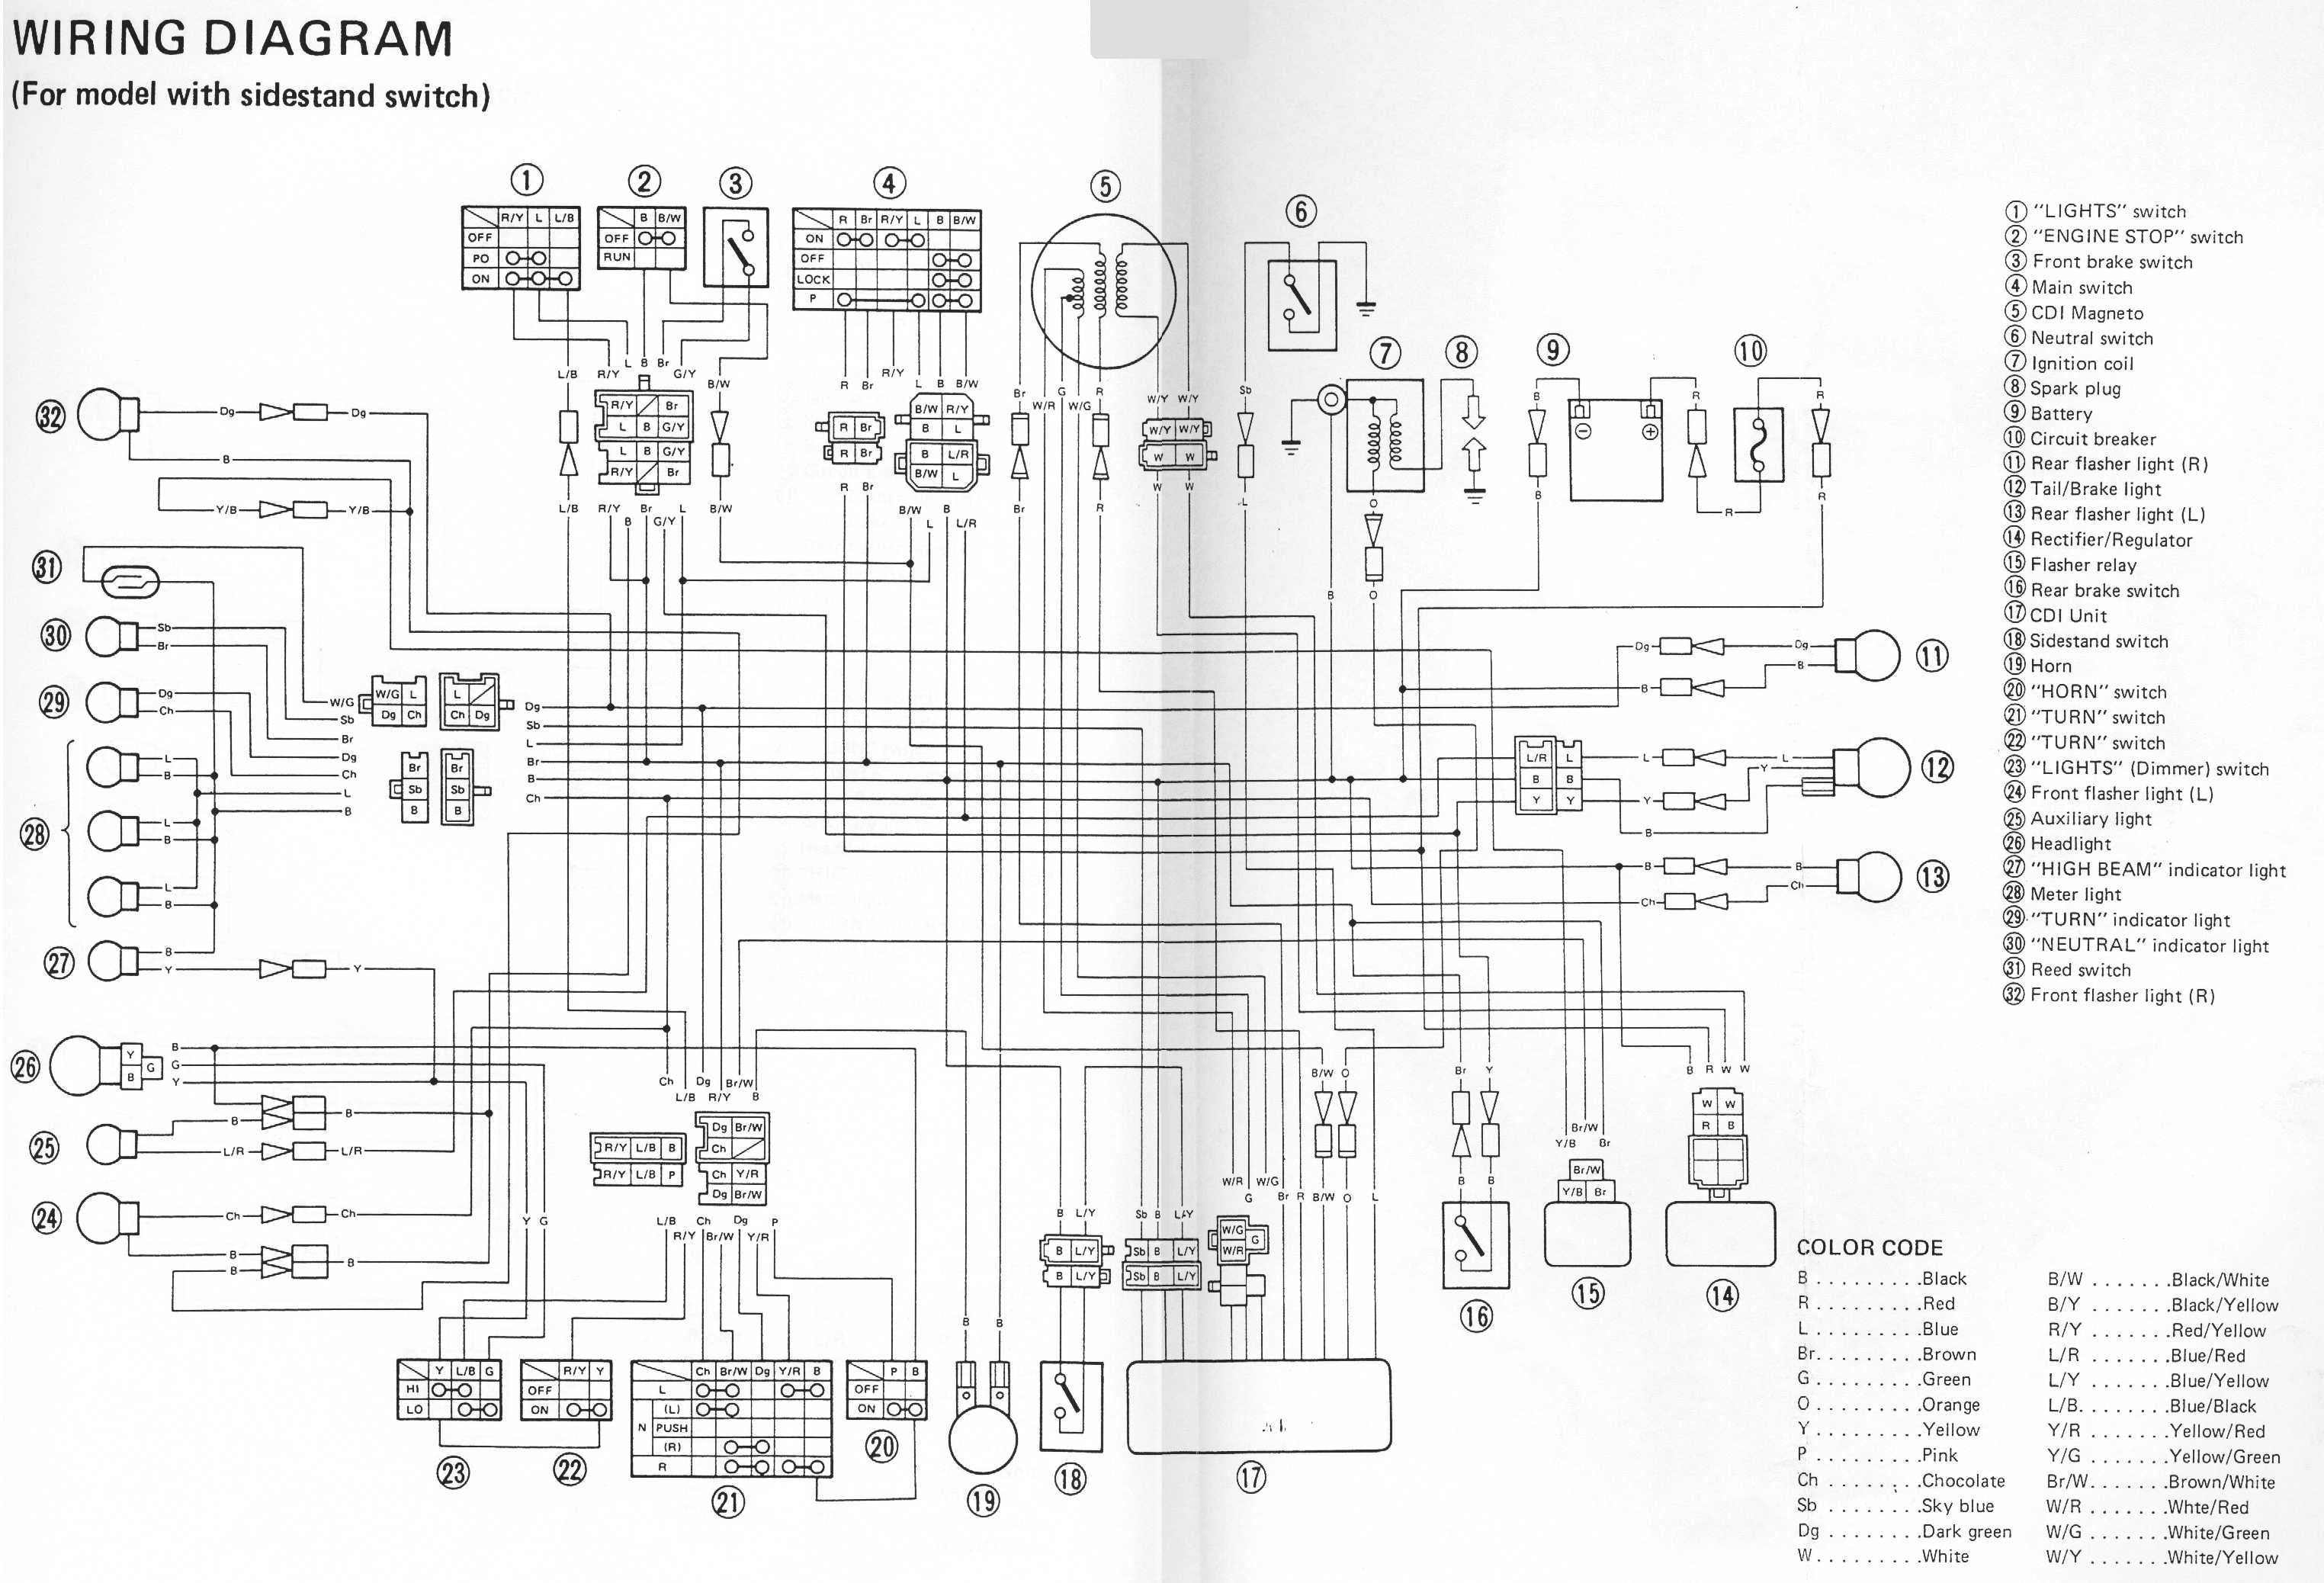 1997 Yamaha Snowmobile Wiring Diagram - Wiring Diagram Text year-suite -  year-suite.albergoristorantecanzo.it | 1997 Yamaha Snowmobile Wiring Diagram |  | year-suite.albergoristorantecanzo.it